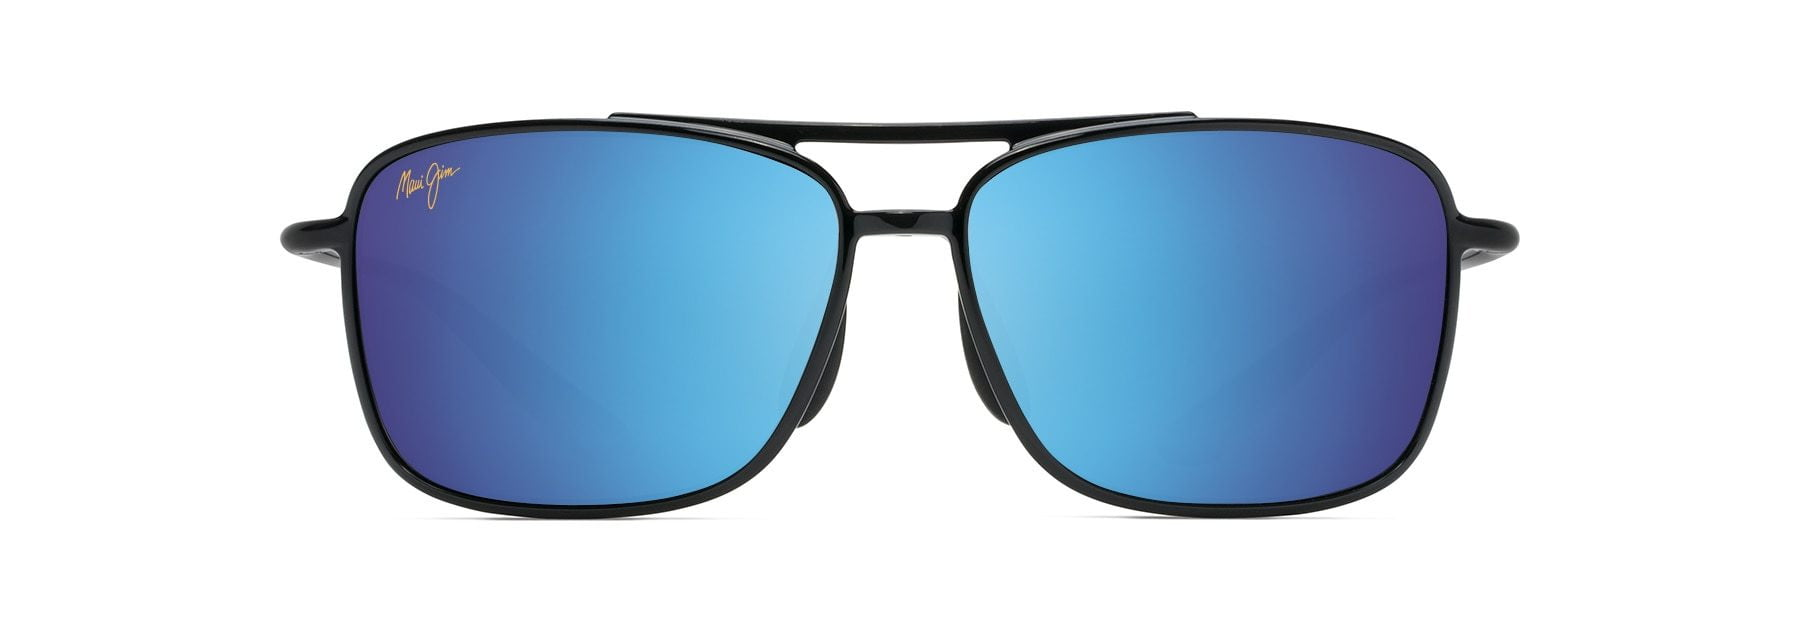 MyMaui Kaupo Gap MM437-001 Sunglasses